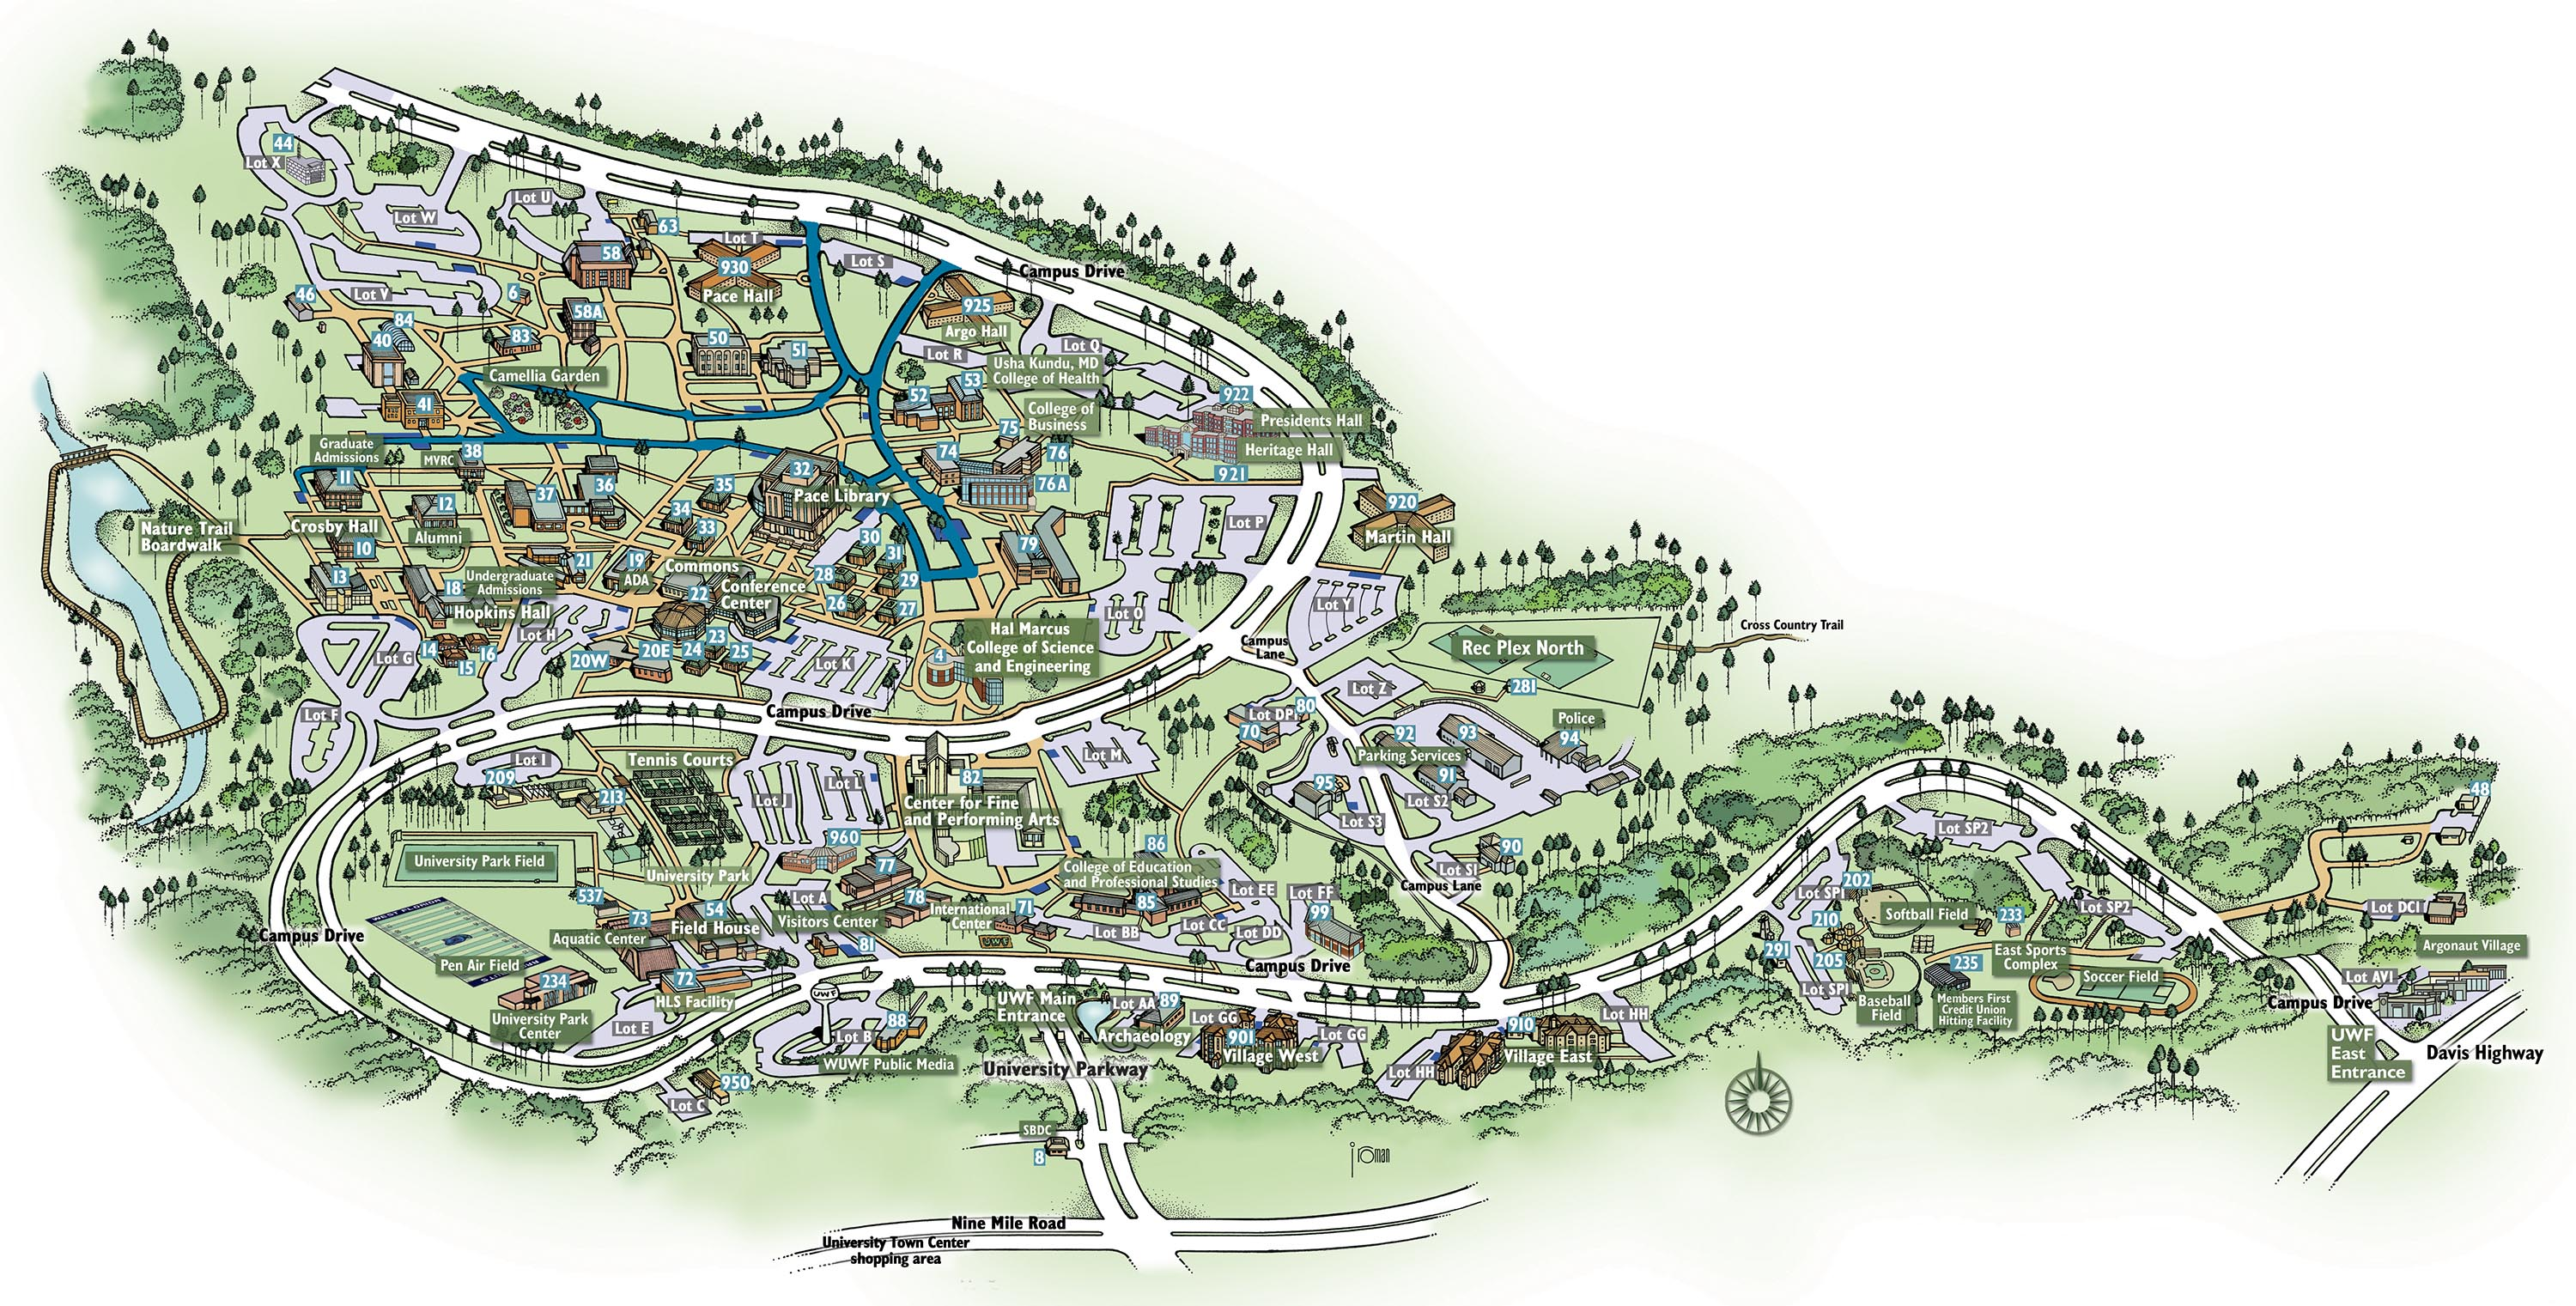 Campus Map | University of West Florida Visitor's Guide